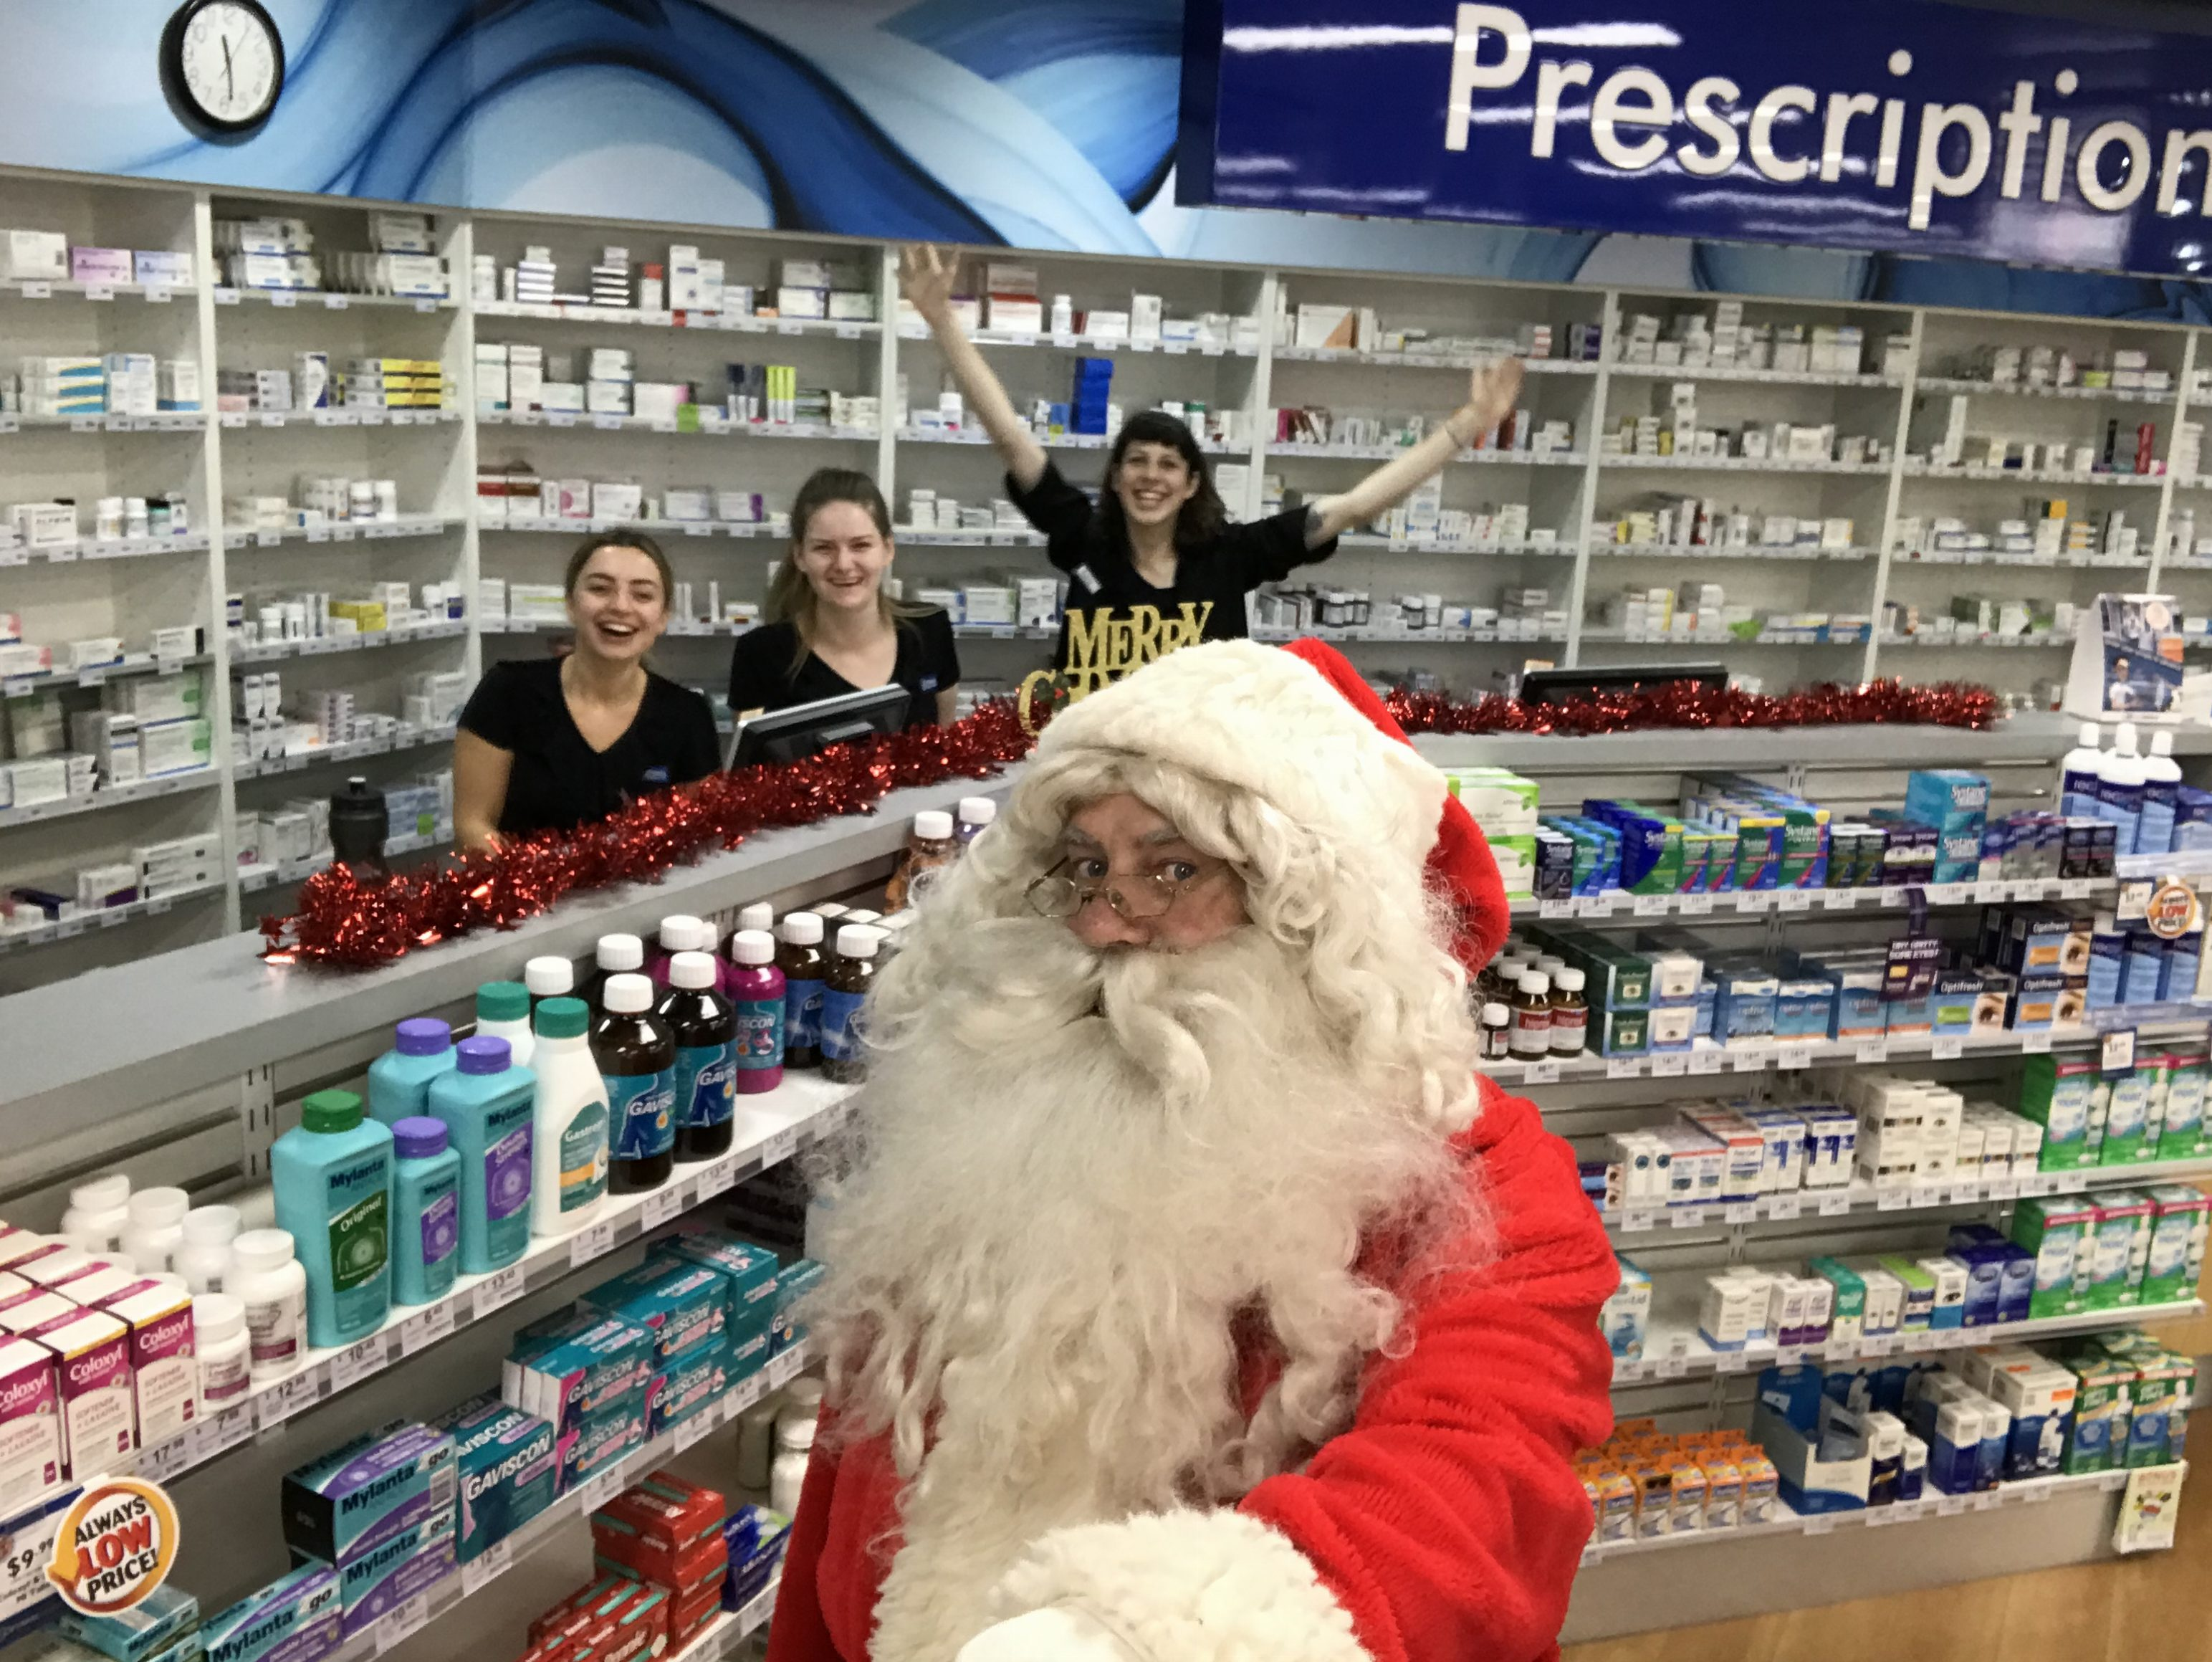 Pharmacists welcome Santa